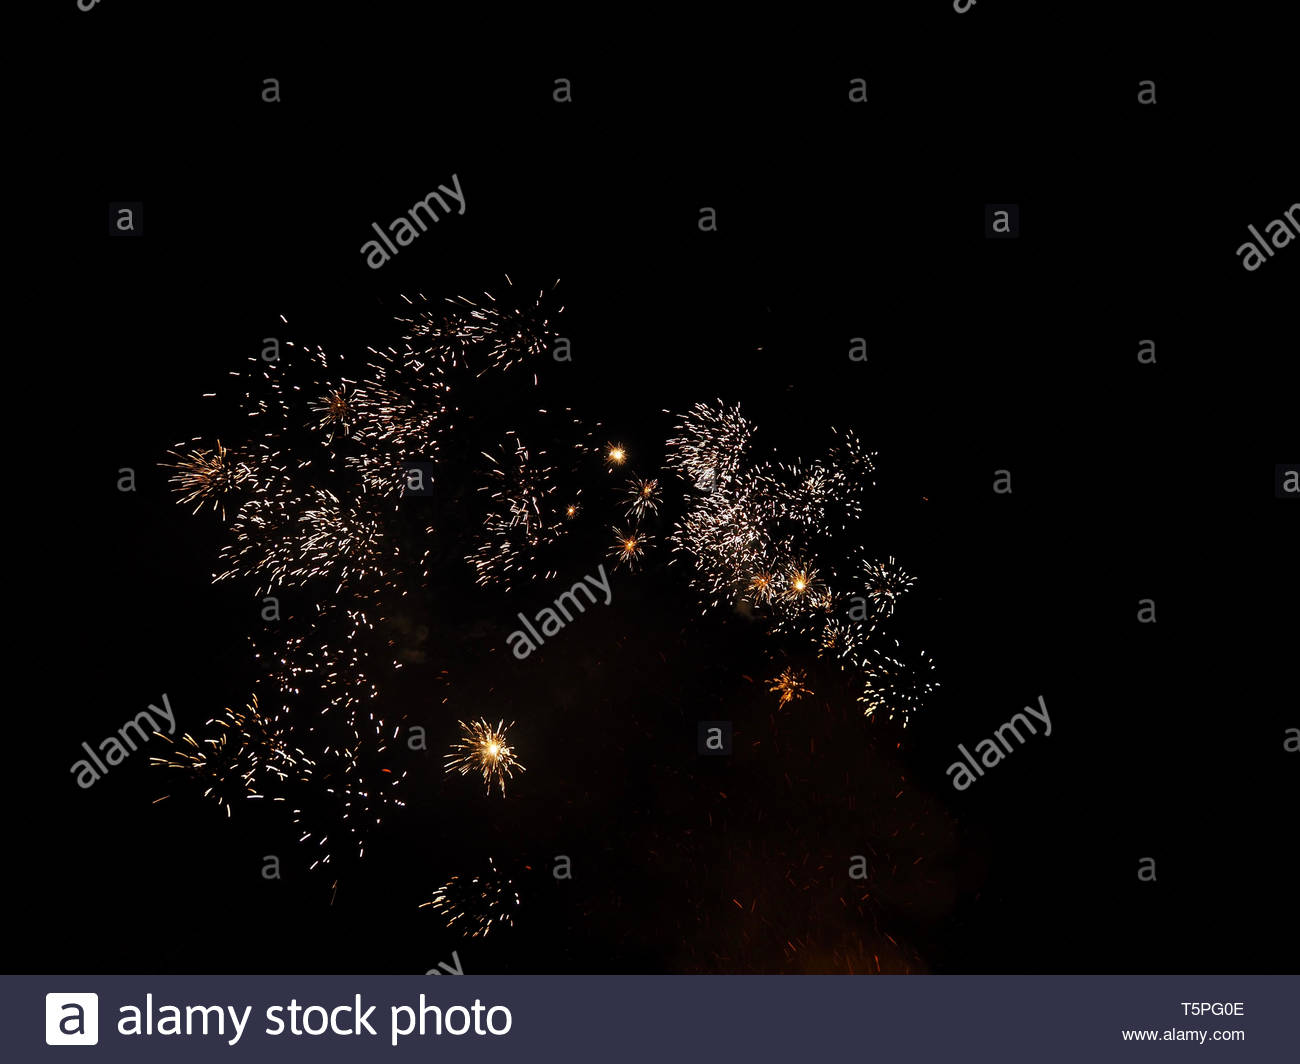 real simple fireworks at night sky over a burning fire - Stock Image